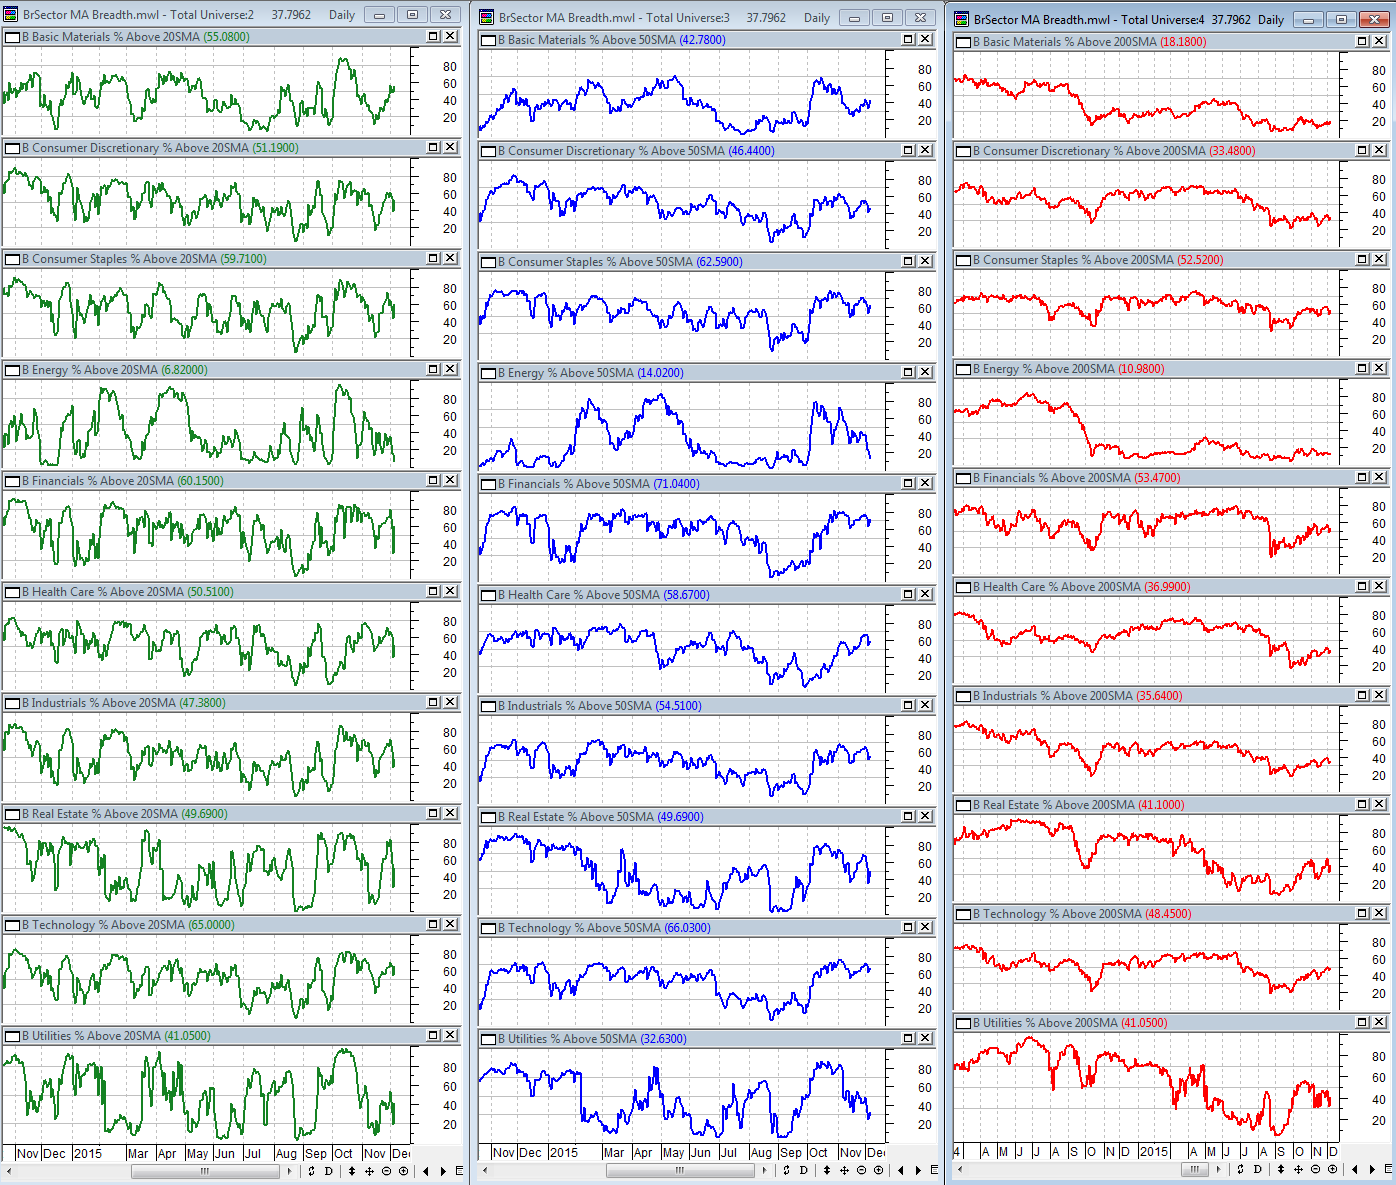 12-4-2015 BSec MA Breadth Dashboard